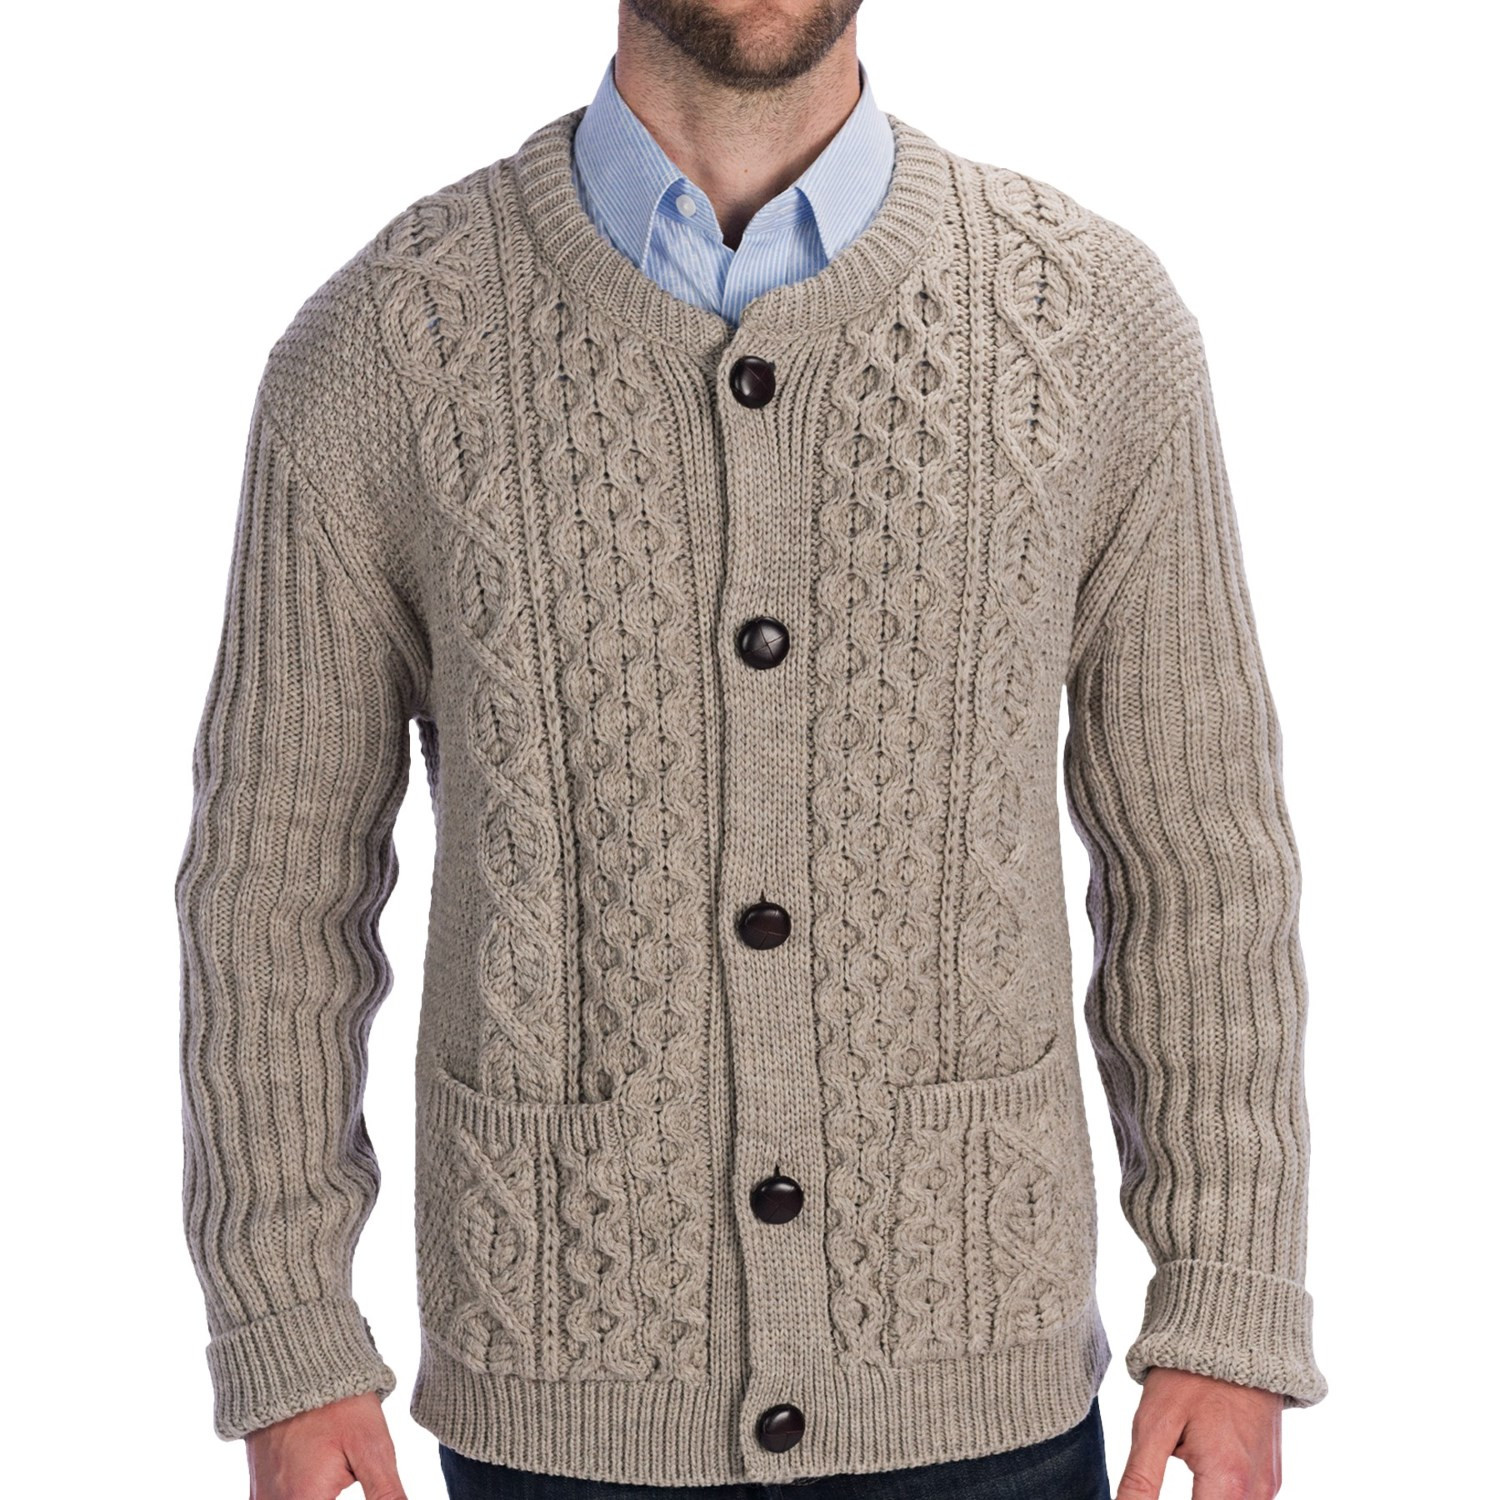 Peregrine by J G Glover Cable Knit Crew Cardigan Sweater